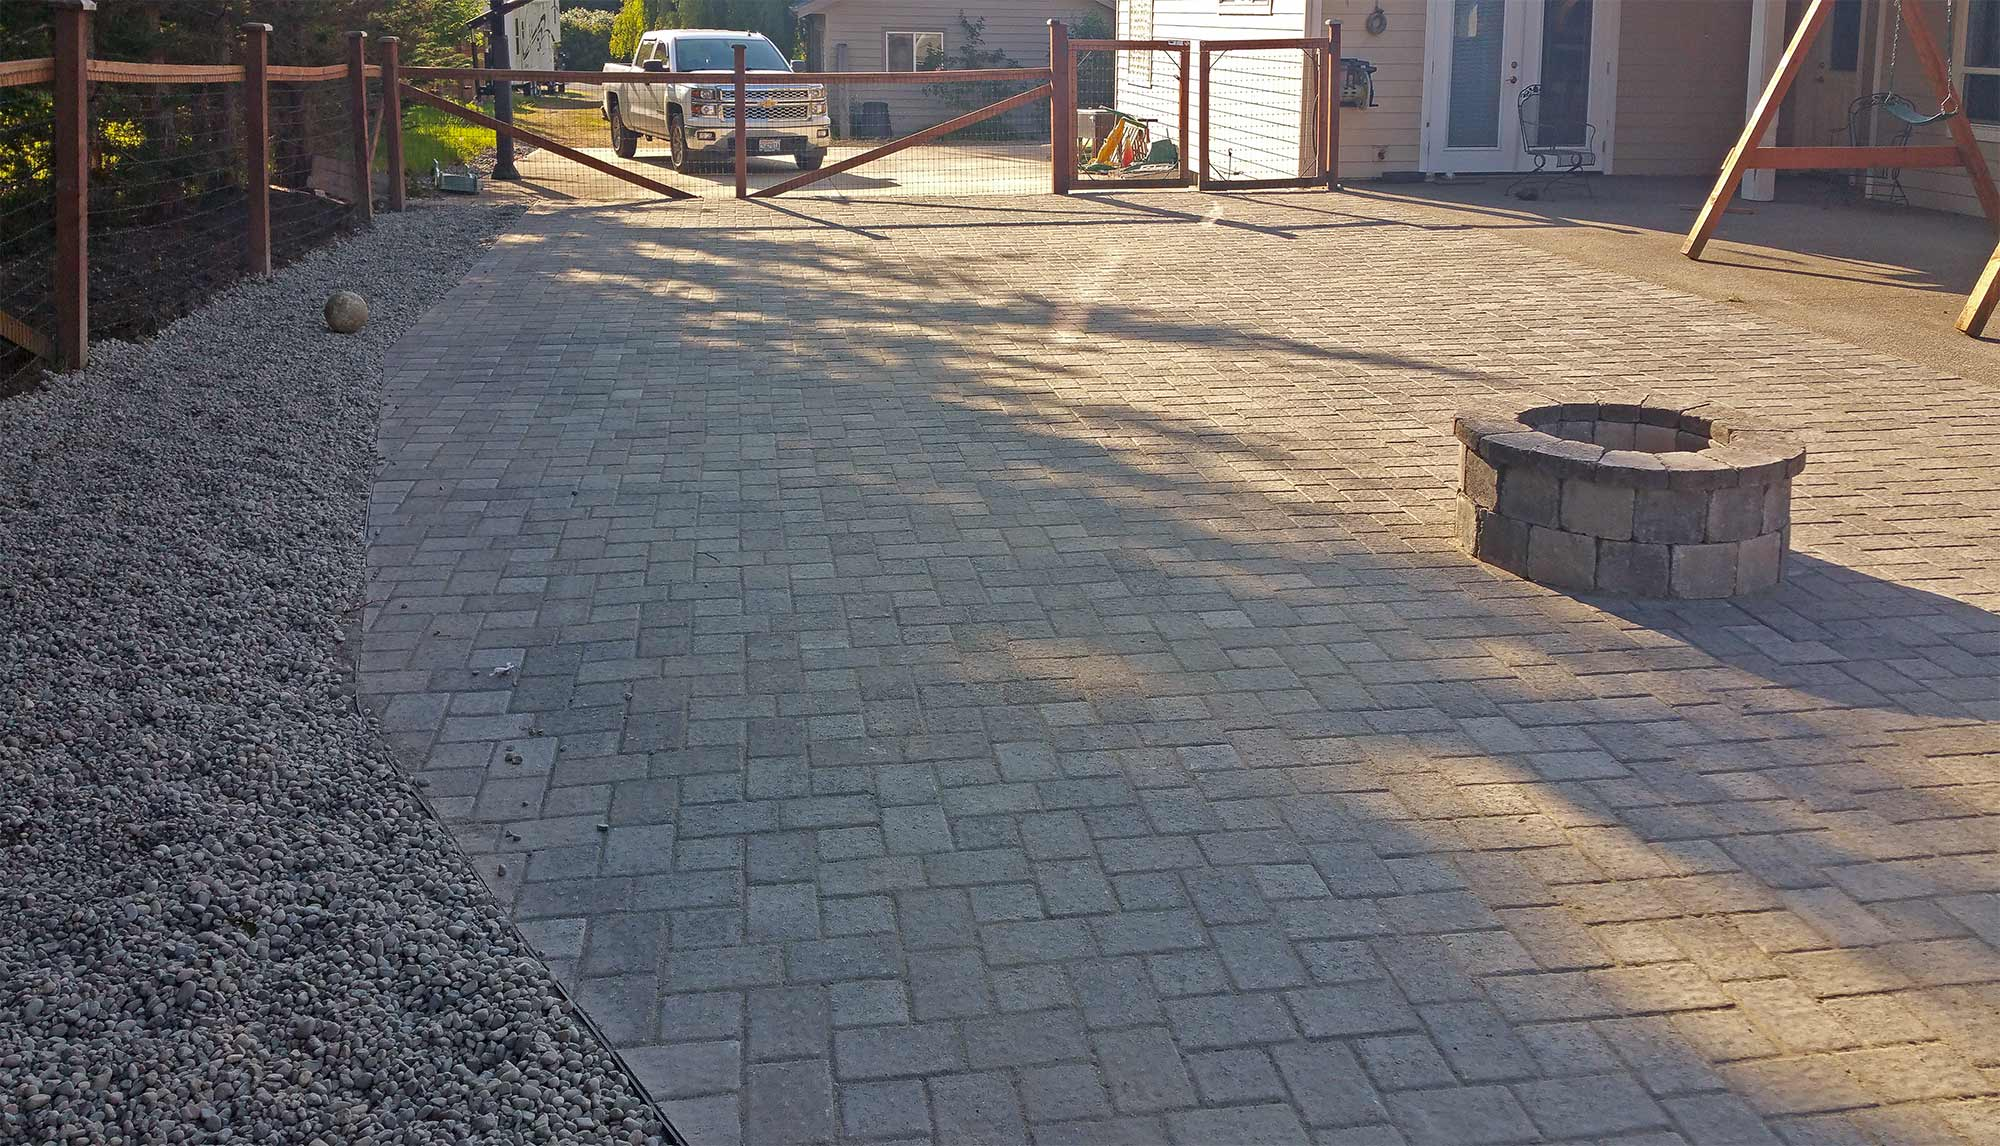 Paver Patio Extension in Boston Harbor - AJB Landscaping & Fence